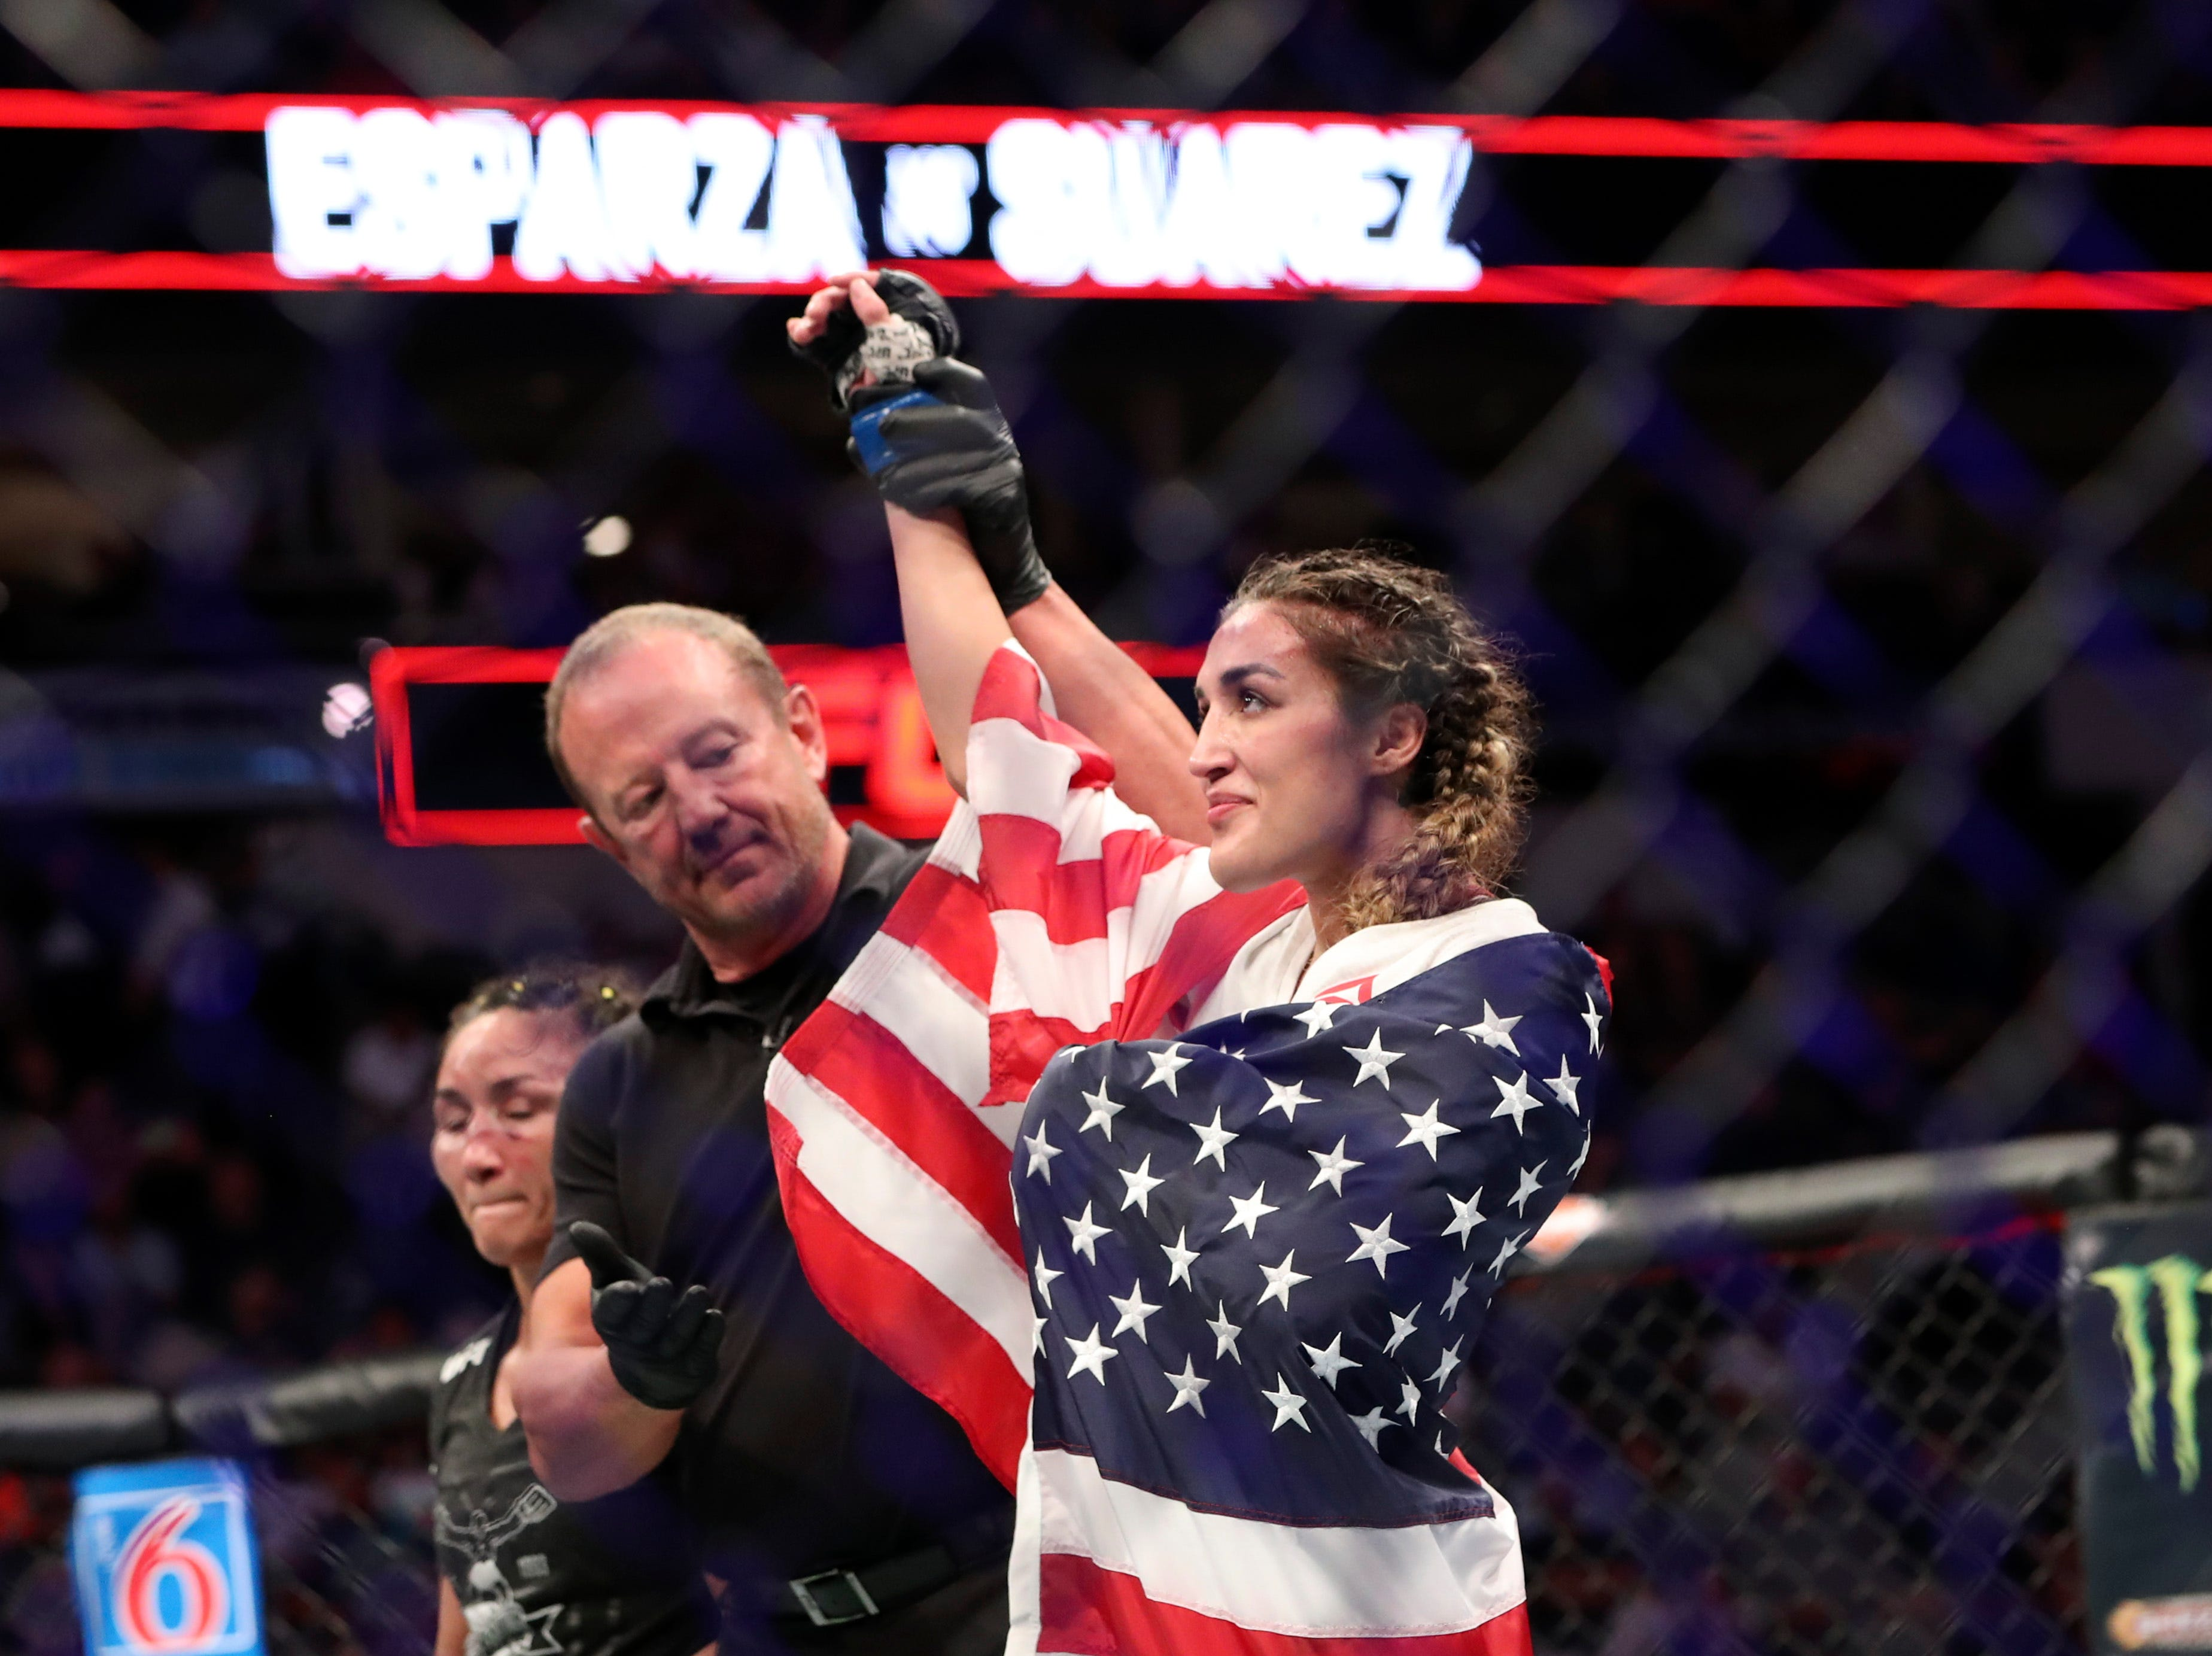 Tatiana Suarez (blue gloves) reacts after defeating Carla Esparza (not pictured) during UFC 228 at American Airlines Center.